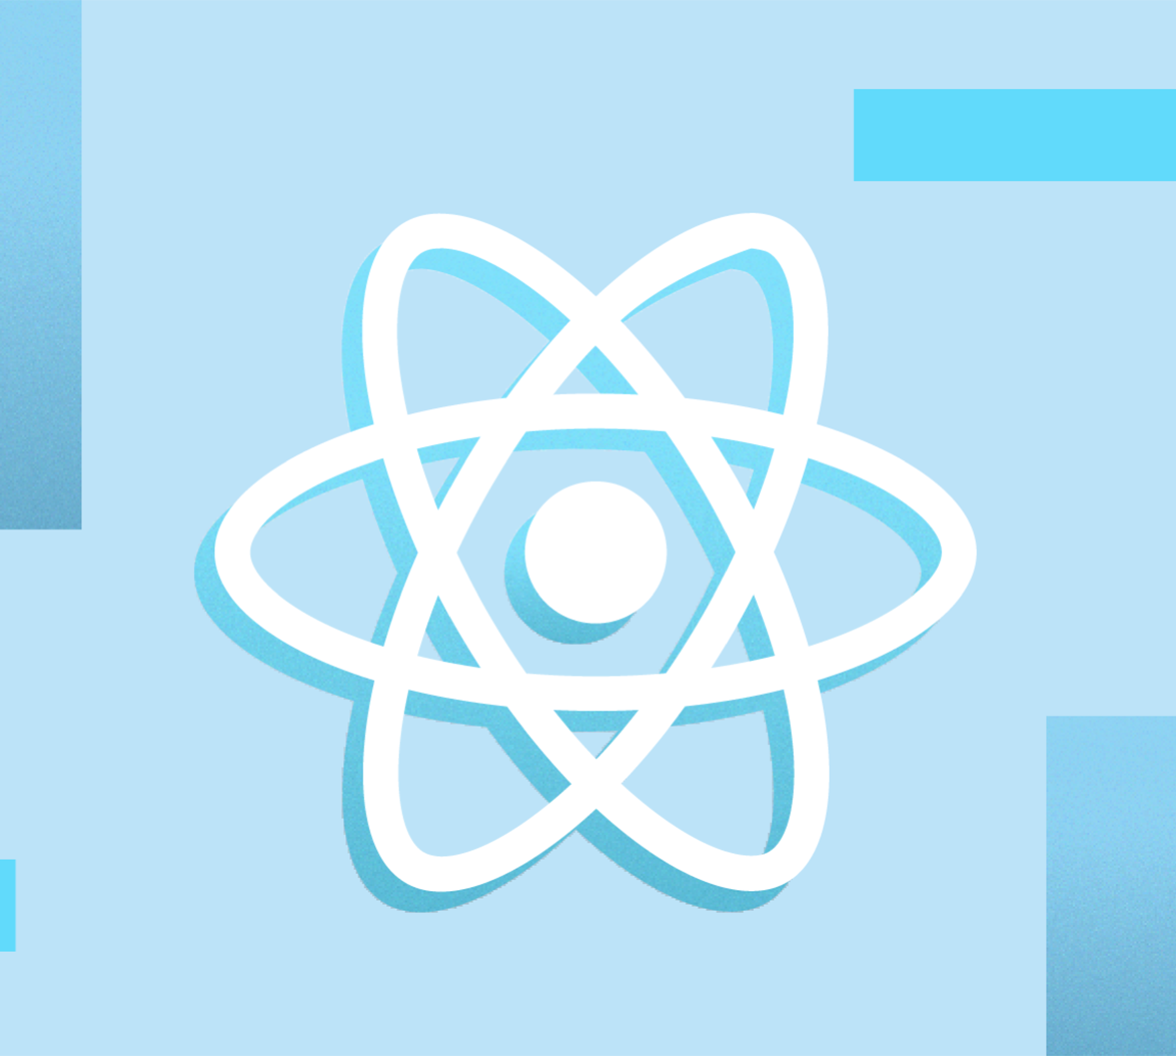 Beyond Create React App: React Router, Redux, Redux Saga, and More